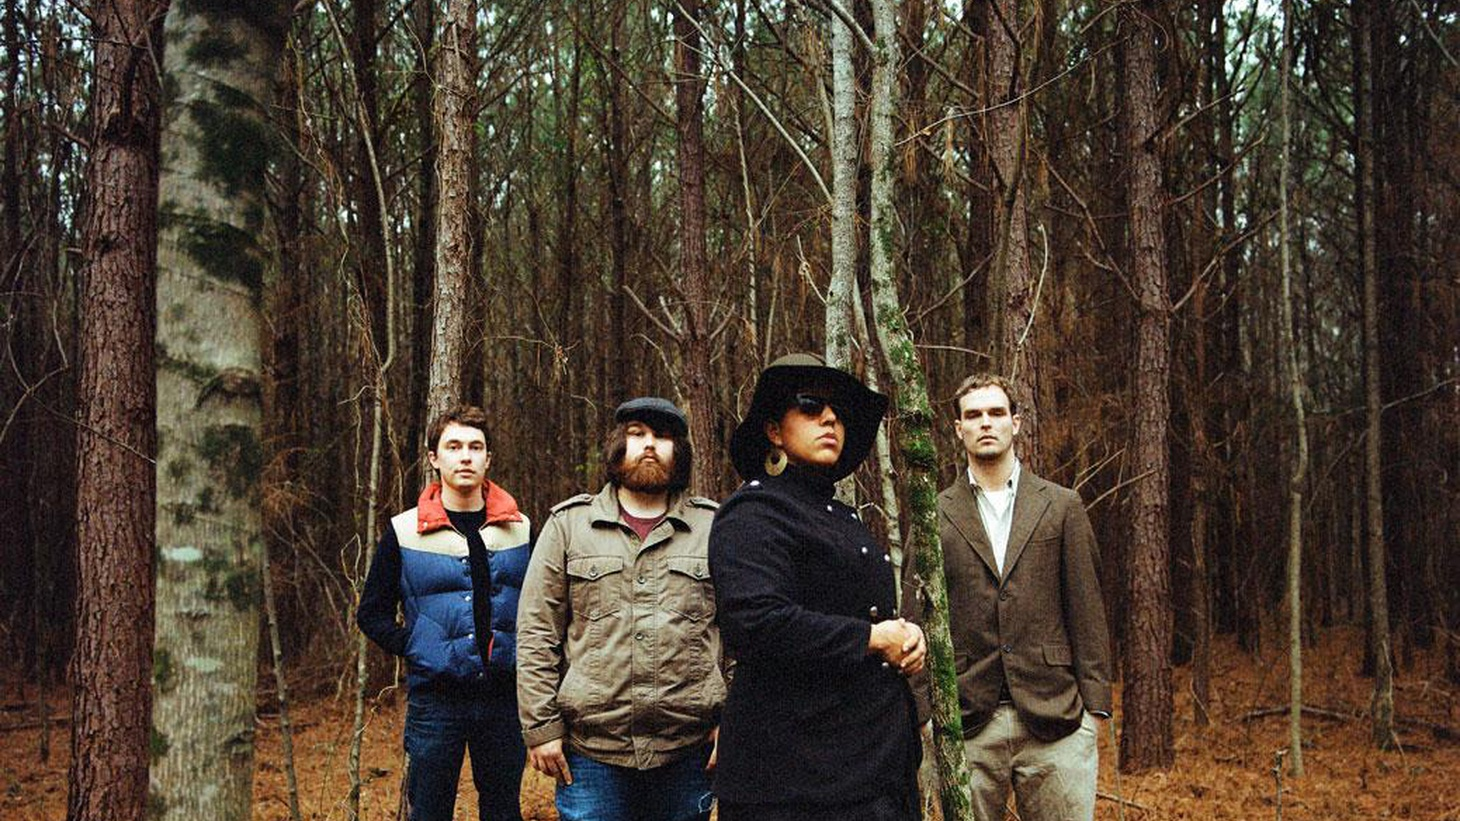 The Alabama Shakes floored us with their MBE live session, playing new songs from their upcoming release, plus a track that didn't make it on the album. But we can offer ...